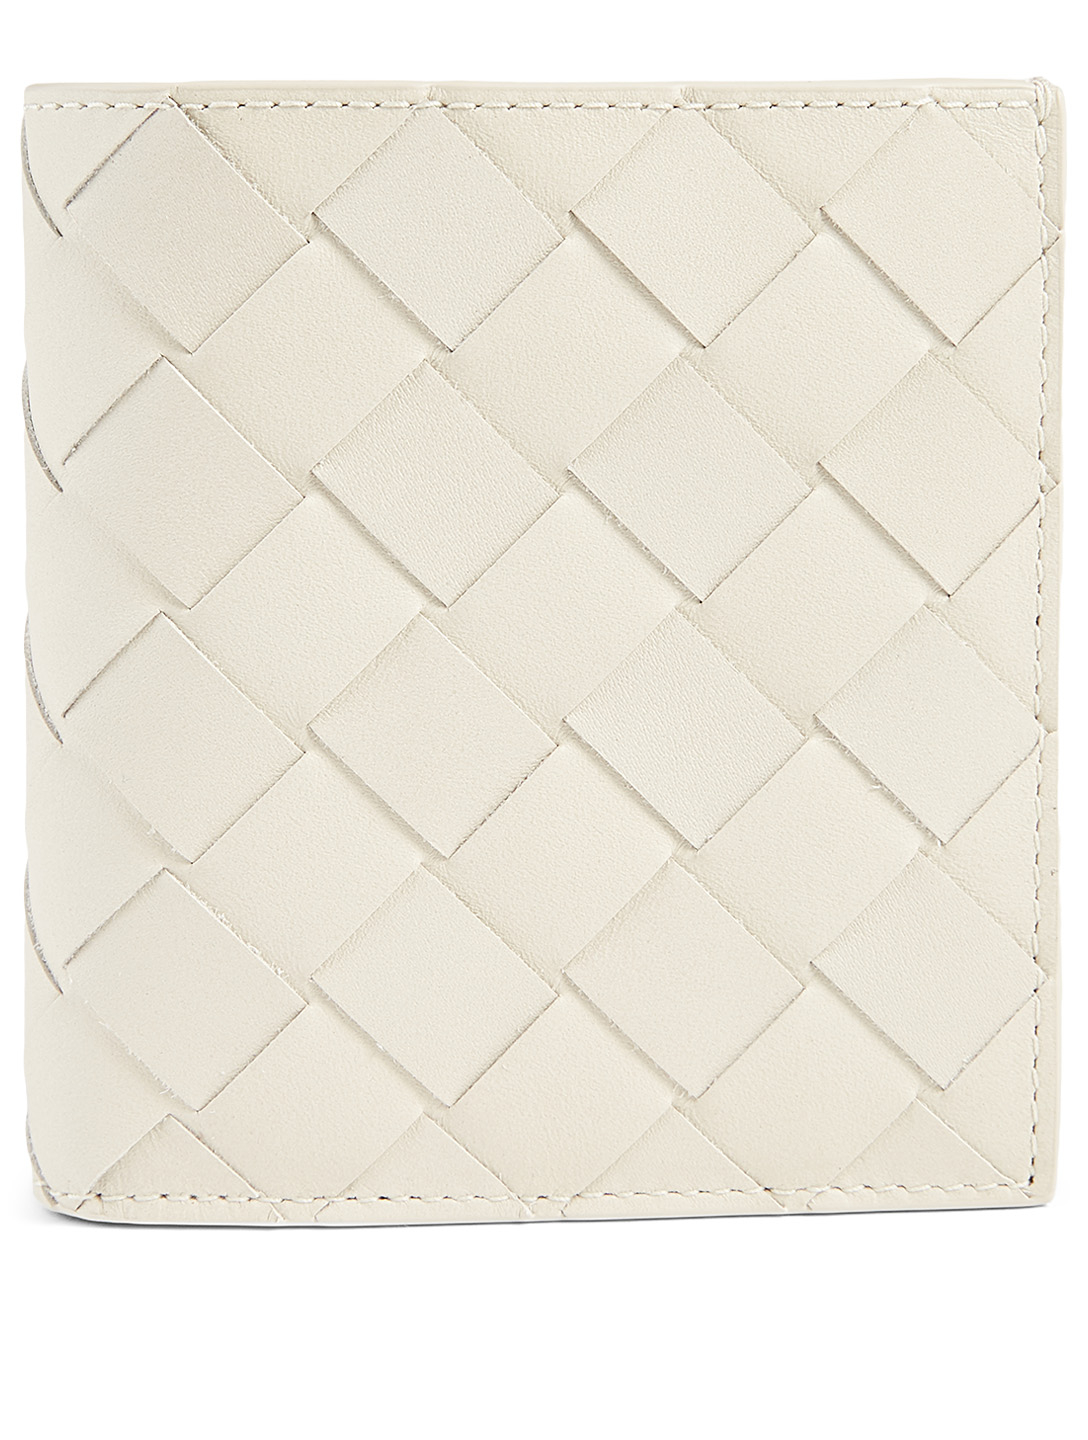 BOTTEGA VENETA Intrecciato Leather Bifold Wallet Men's Grey